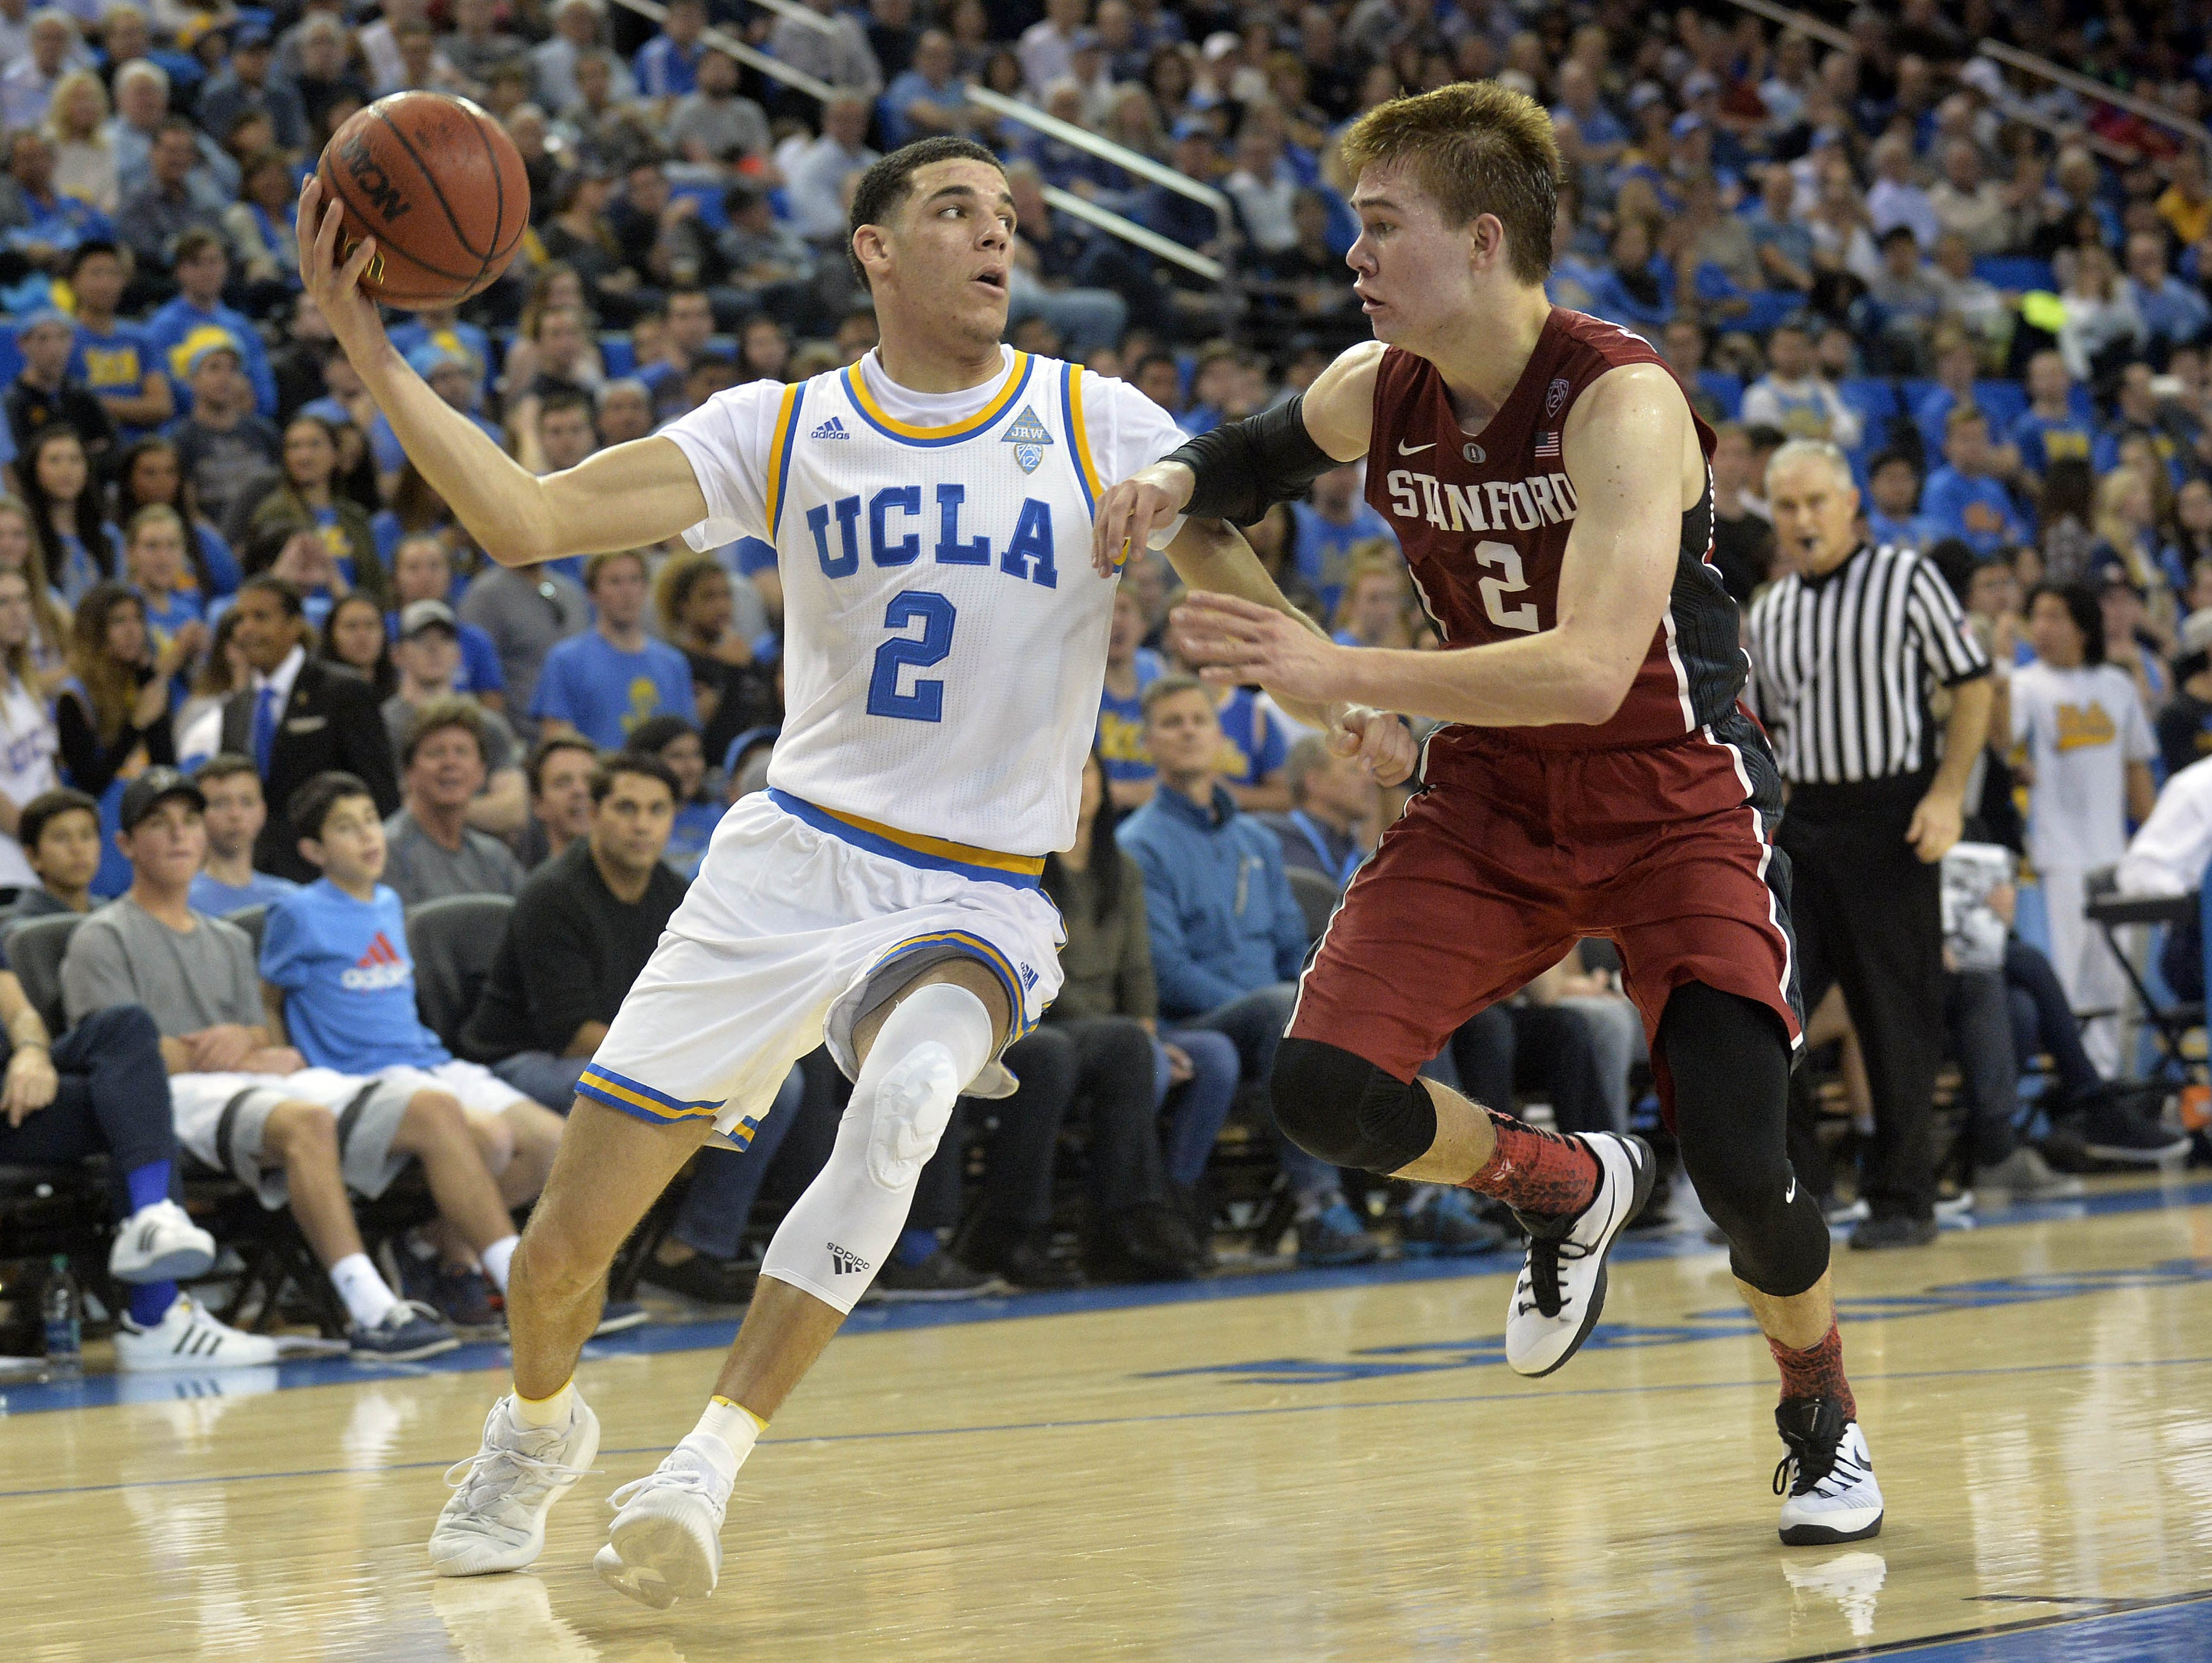 UCLA Bruins guard Lonzo Ball (2) moves the ball against the defense of Stanford Cardinal guard Robert Cartwright (2). He scored 21 in UCLA?s 89-75 win. January 8, 2017; Los Angeles, CA, USA; UCLA Bruins guard Lonzo Ball played in the 2015 Bass Pro Tournament of Champions for Chino Hills (Chino Hills, California)